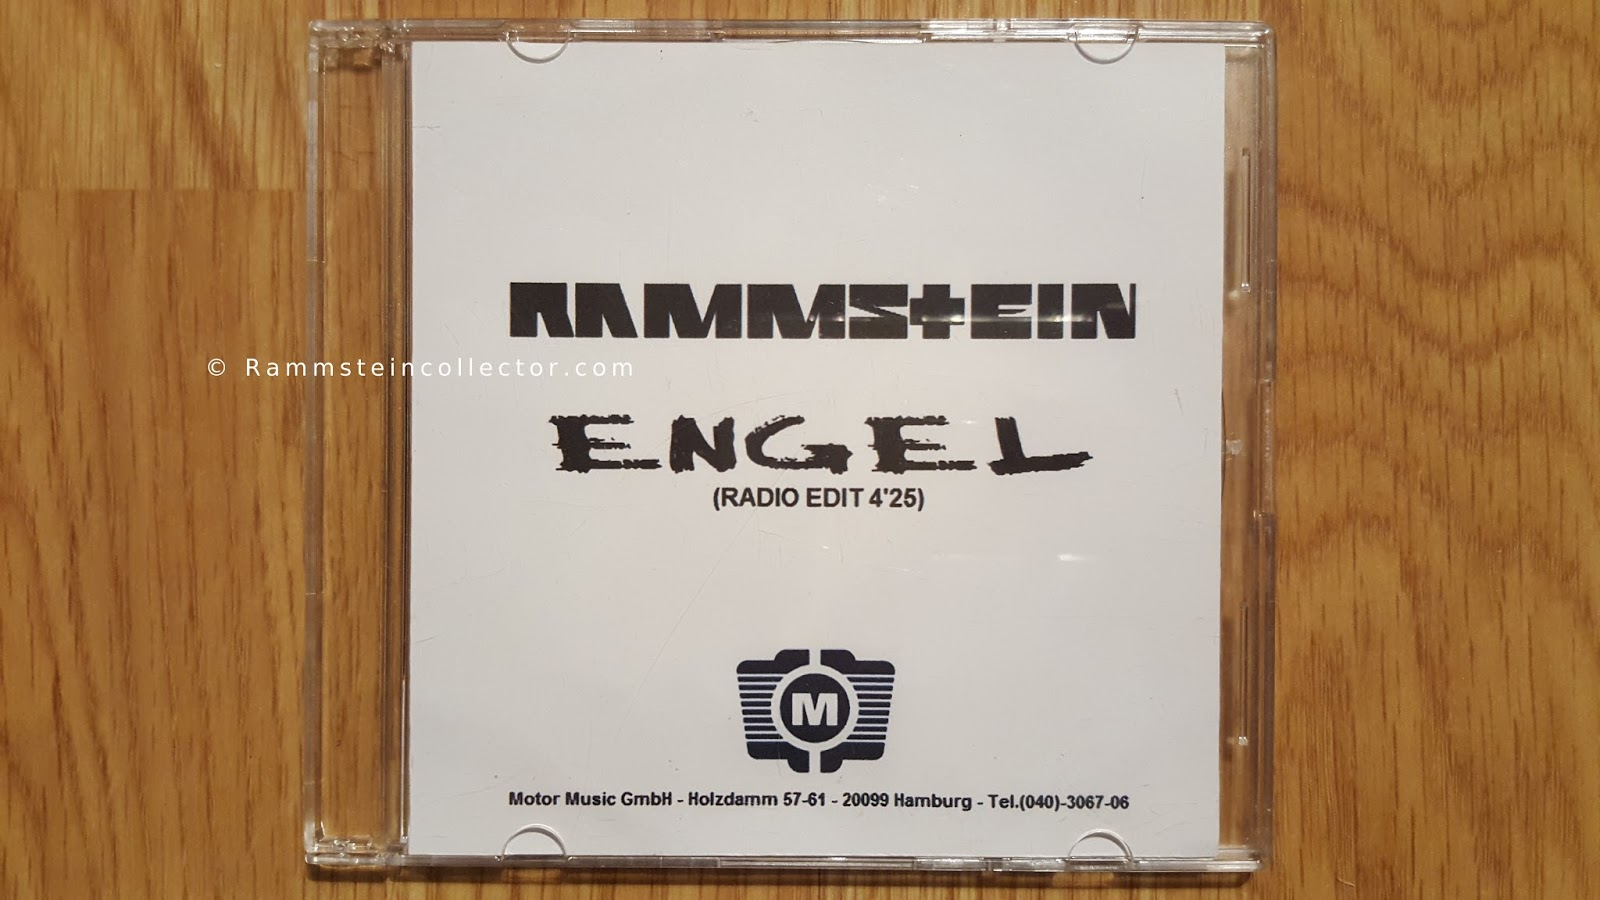 rammstein engel lyrics